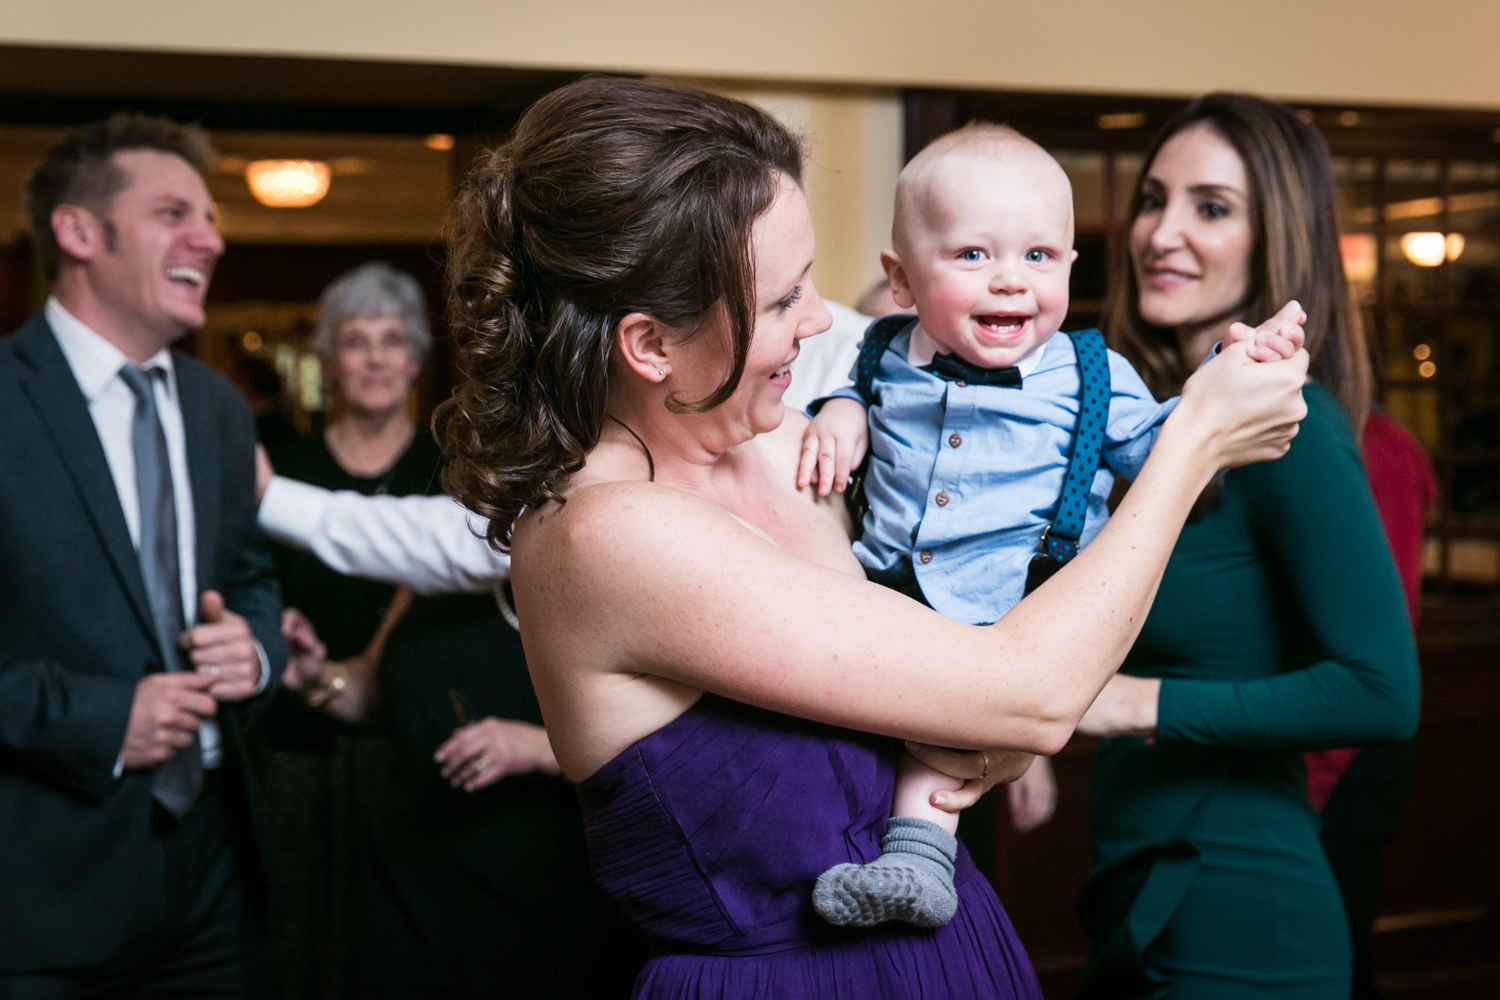 Woman dancing with baby at a Nassau Inn wedding